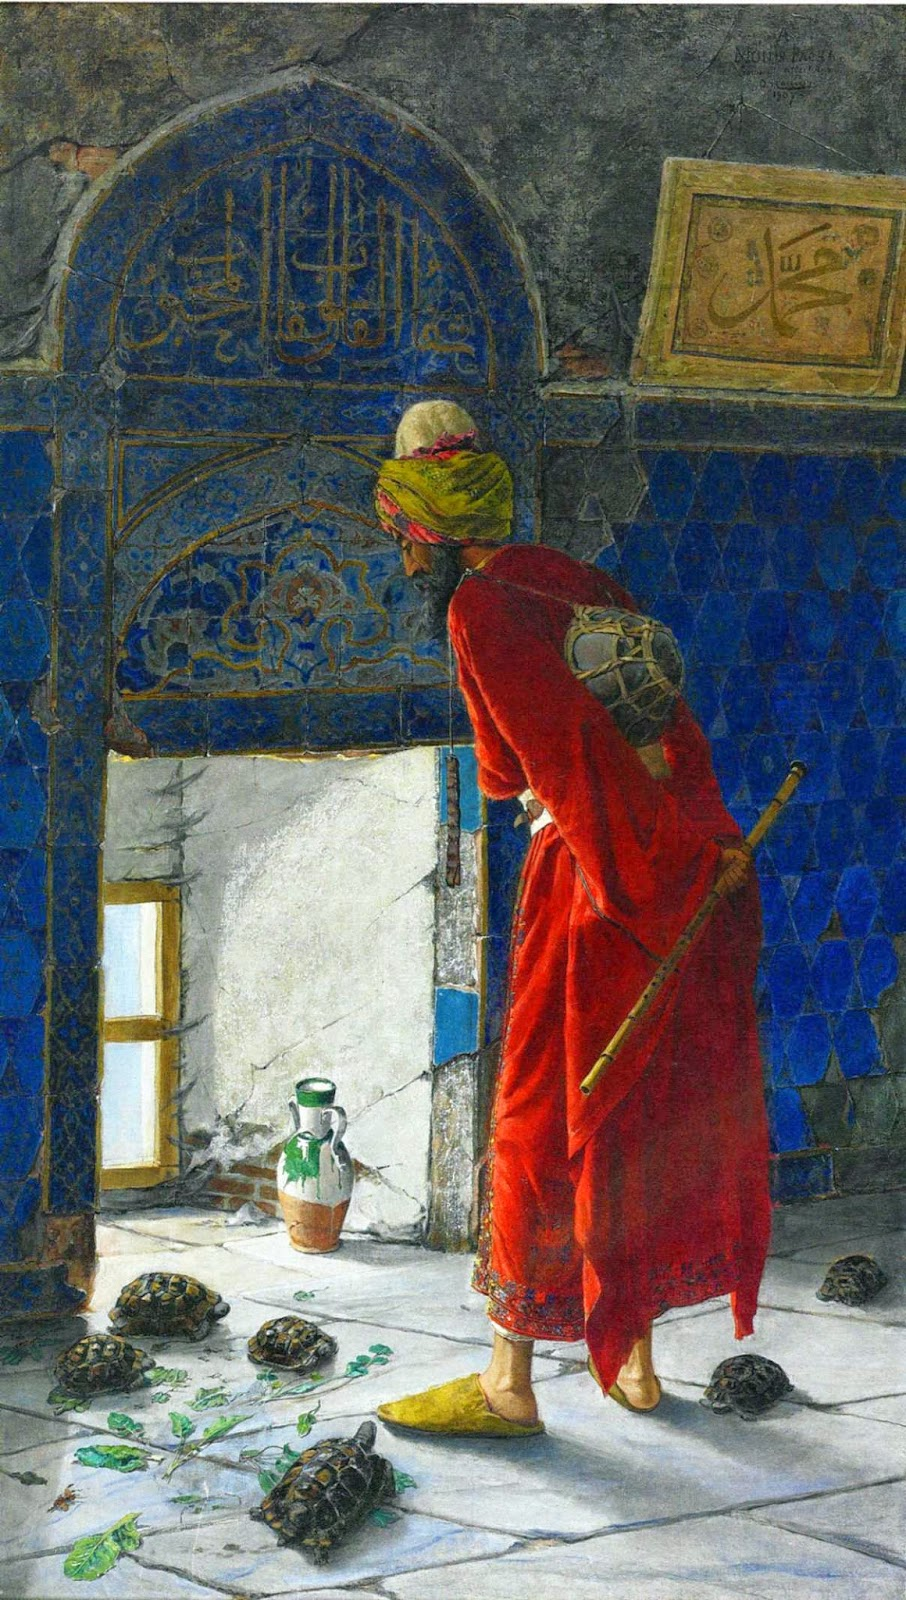 Osman Hamdi Bey - the turtle trainer